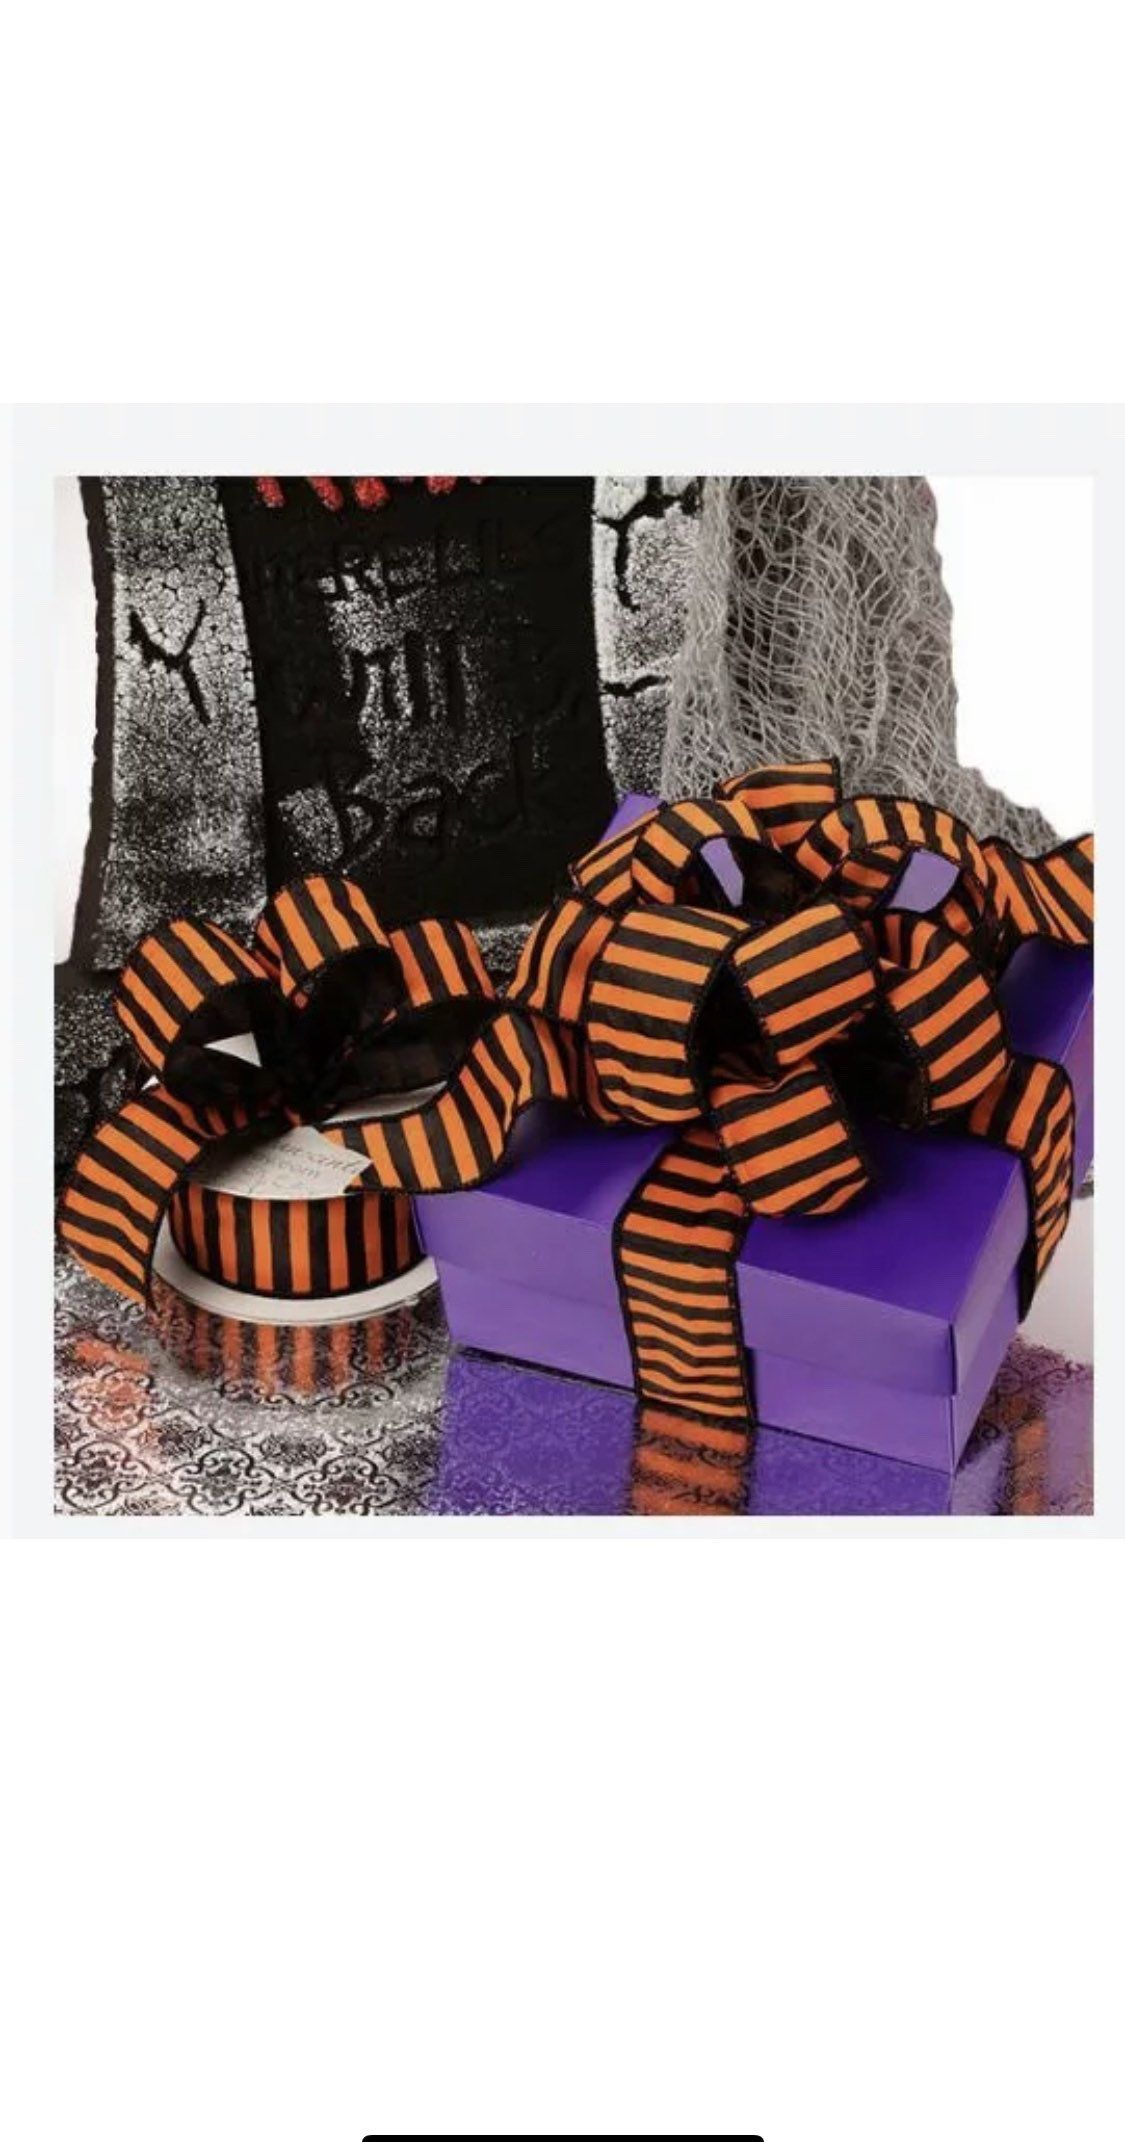 10pc purple halloween paper gift boxes with lids 8 x 8 x 4